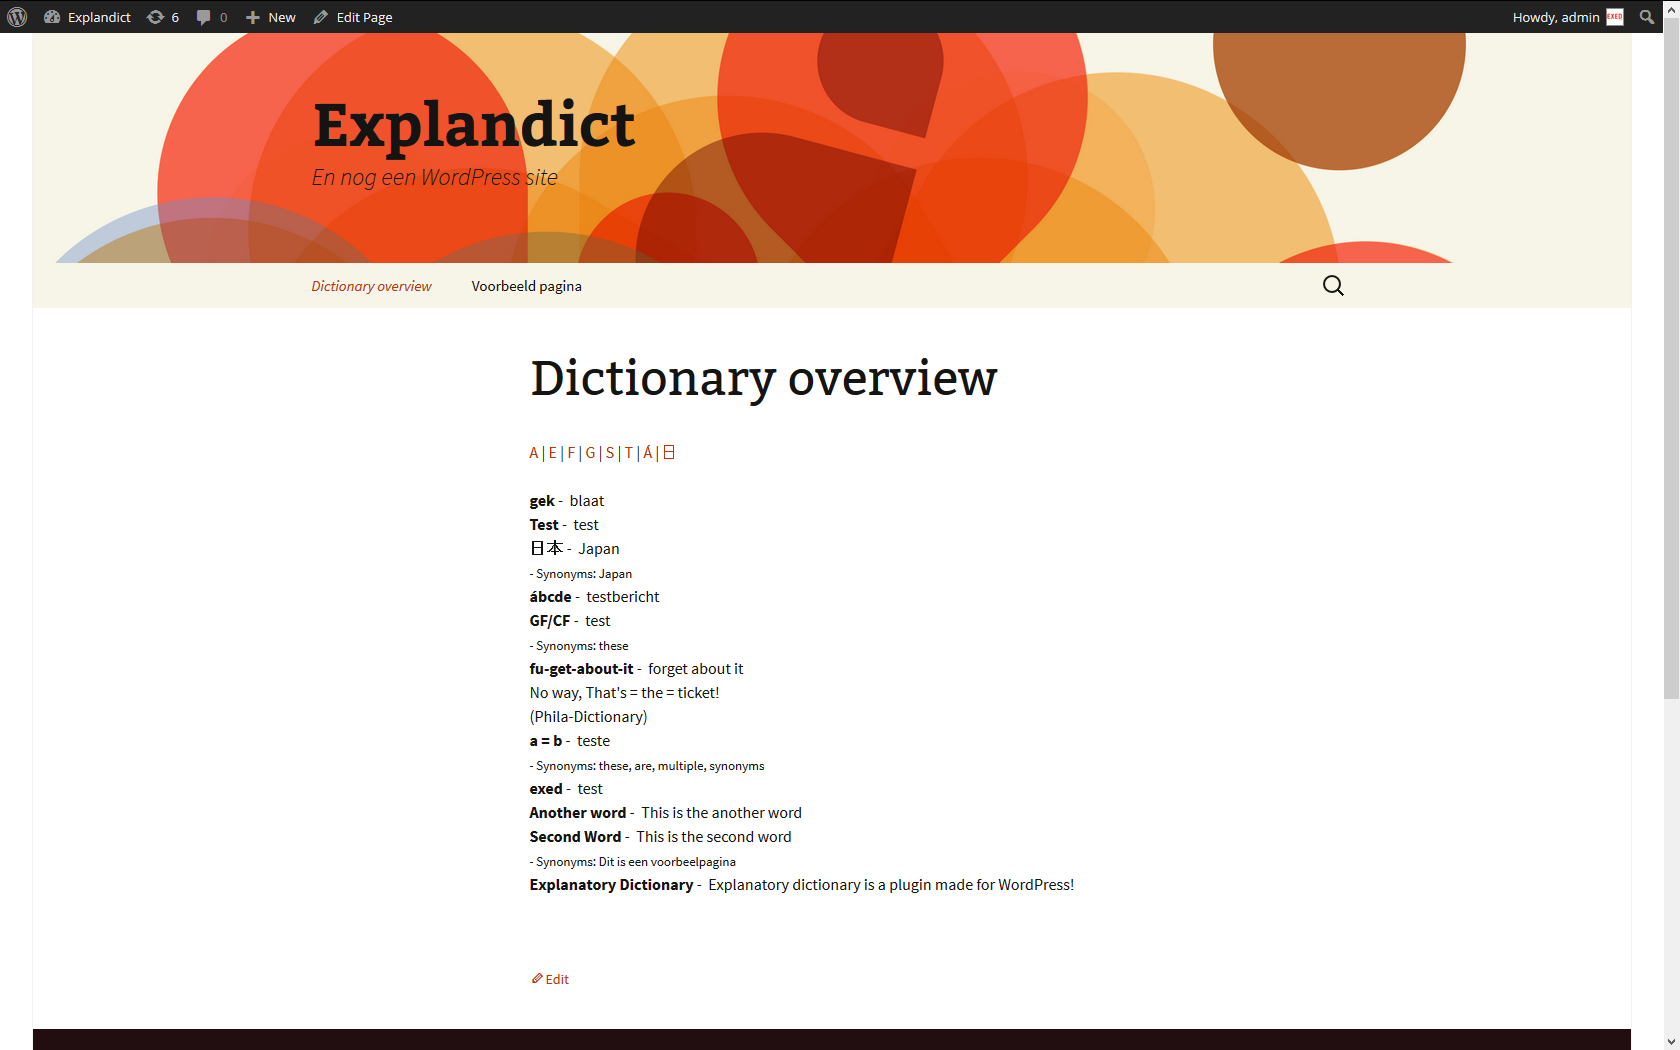 explanatory-dictionary screenshot 4